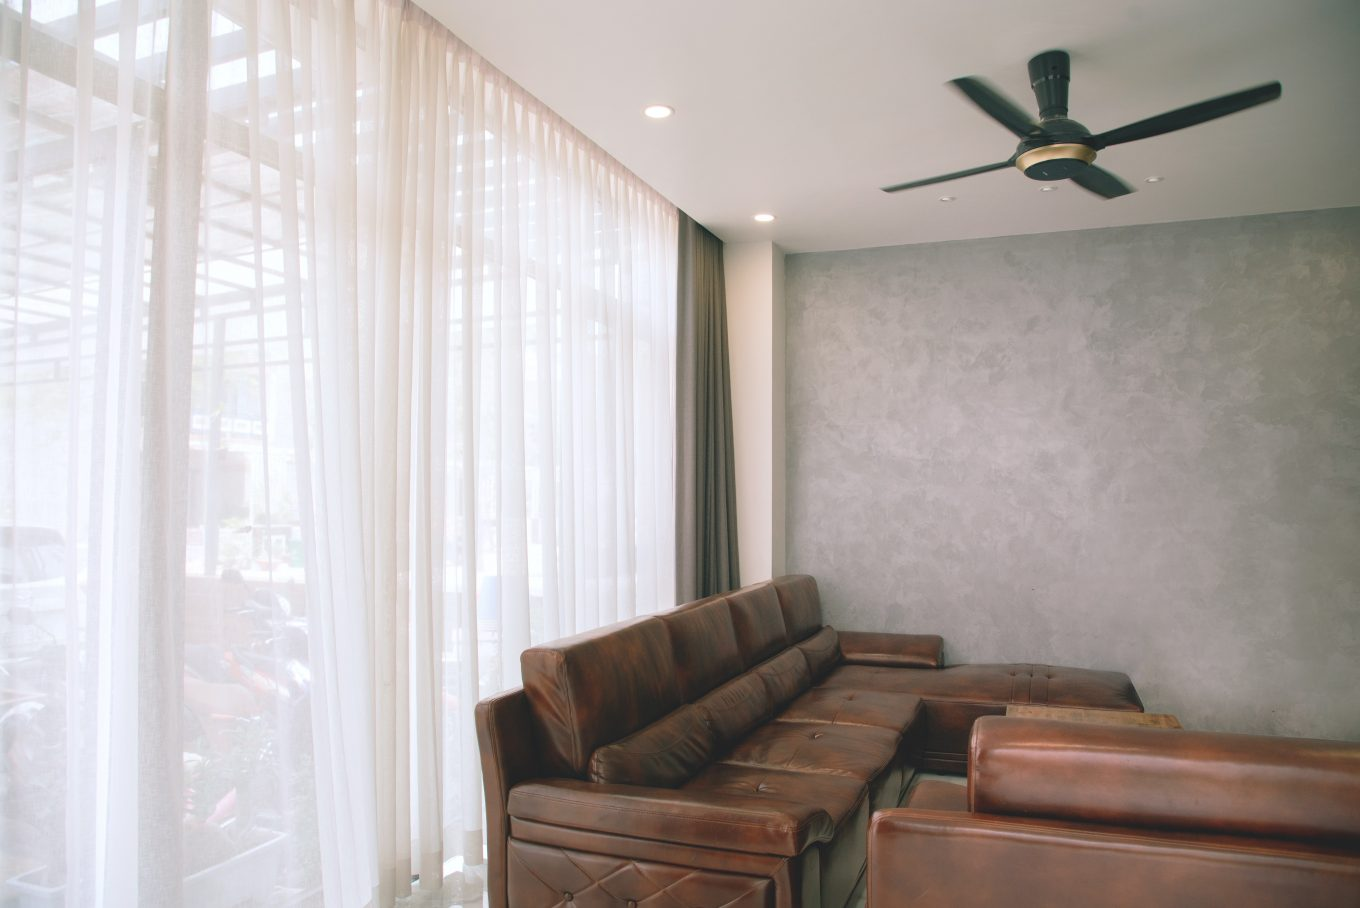 brown couch and black celing fan